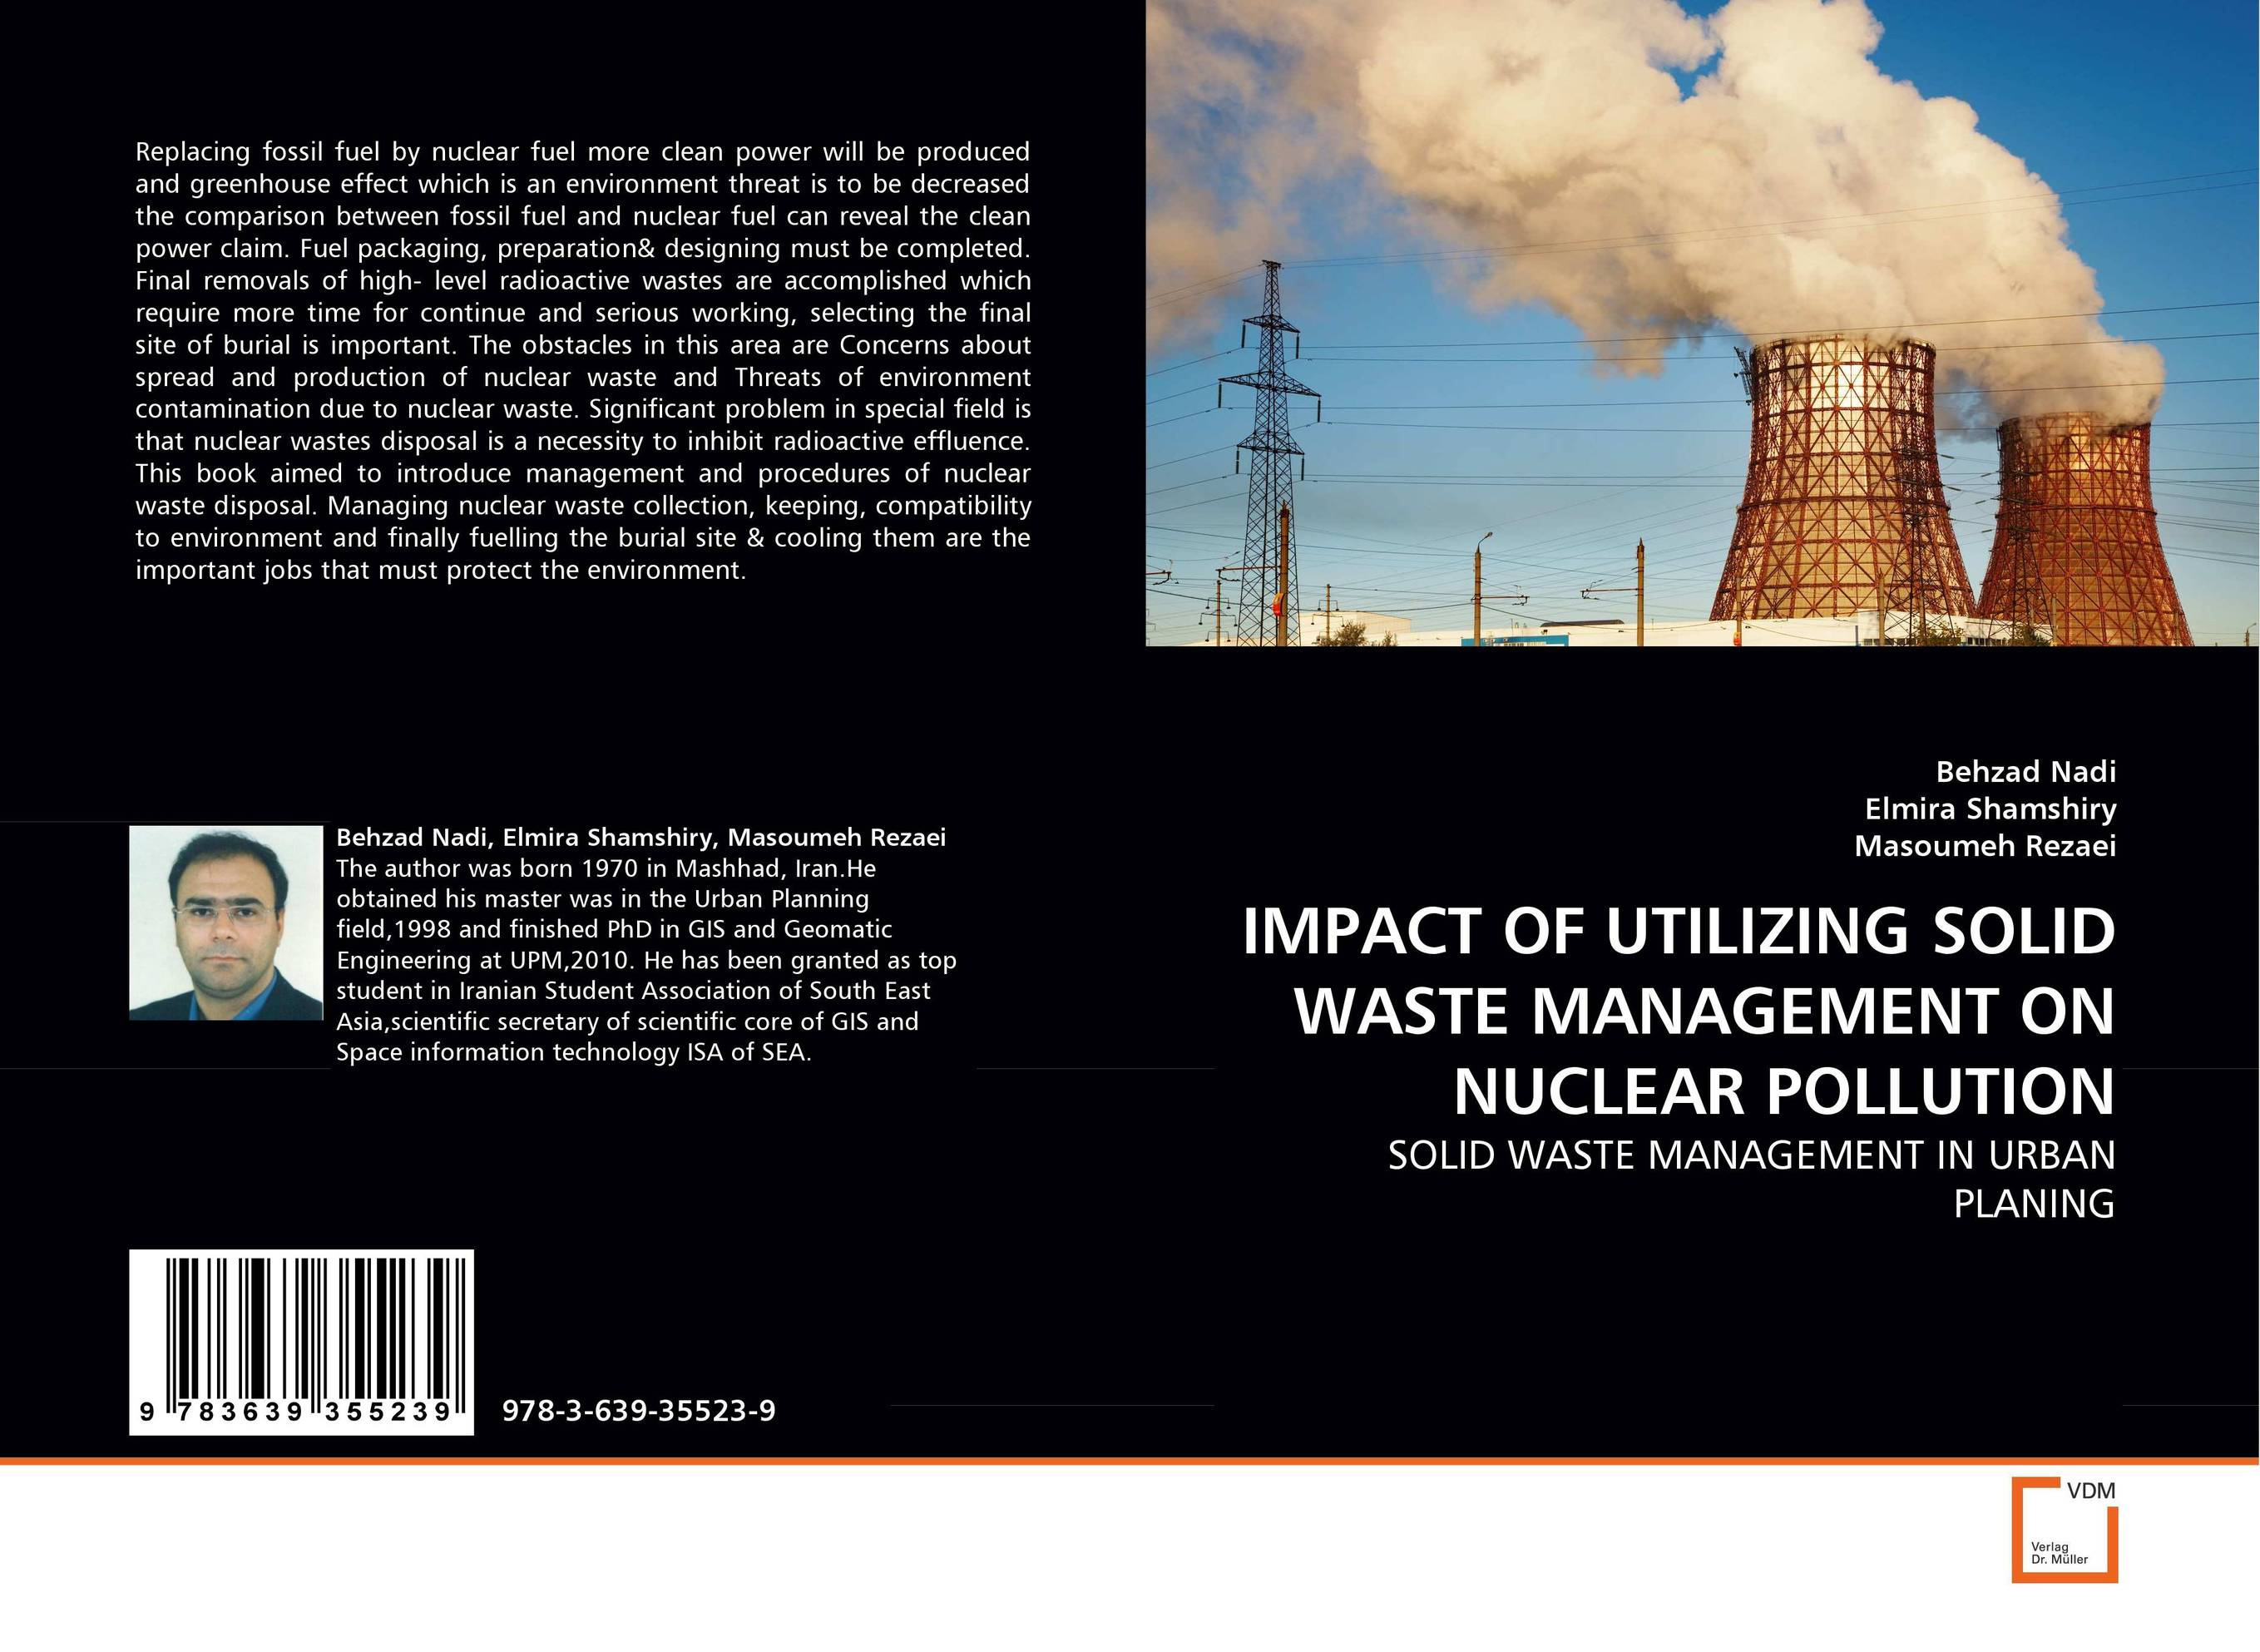 IMPACT OF UTILIZING SOLID WASTE MANAGEMENT ON NUCLEAR POLLUTION india s nuclear bomb – the impact on global proliferation updated edition